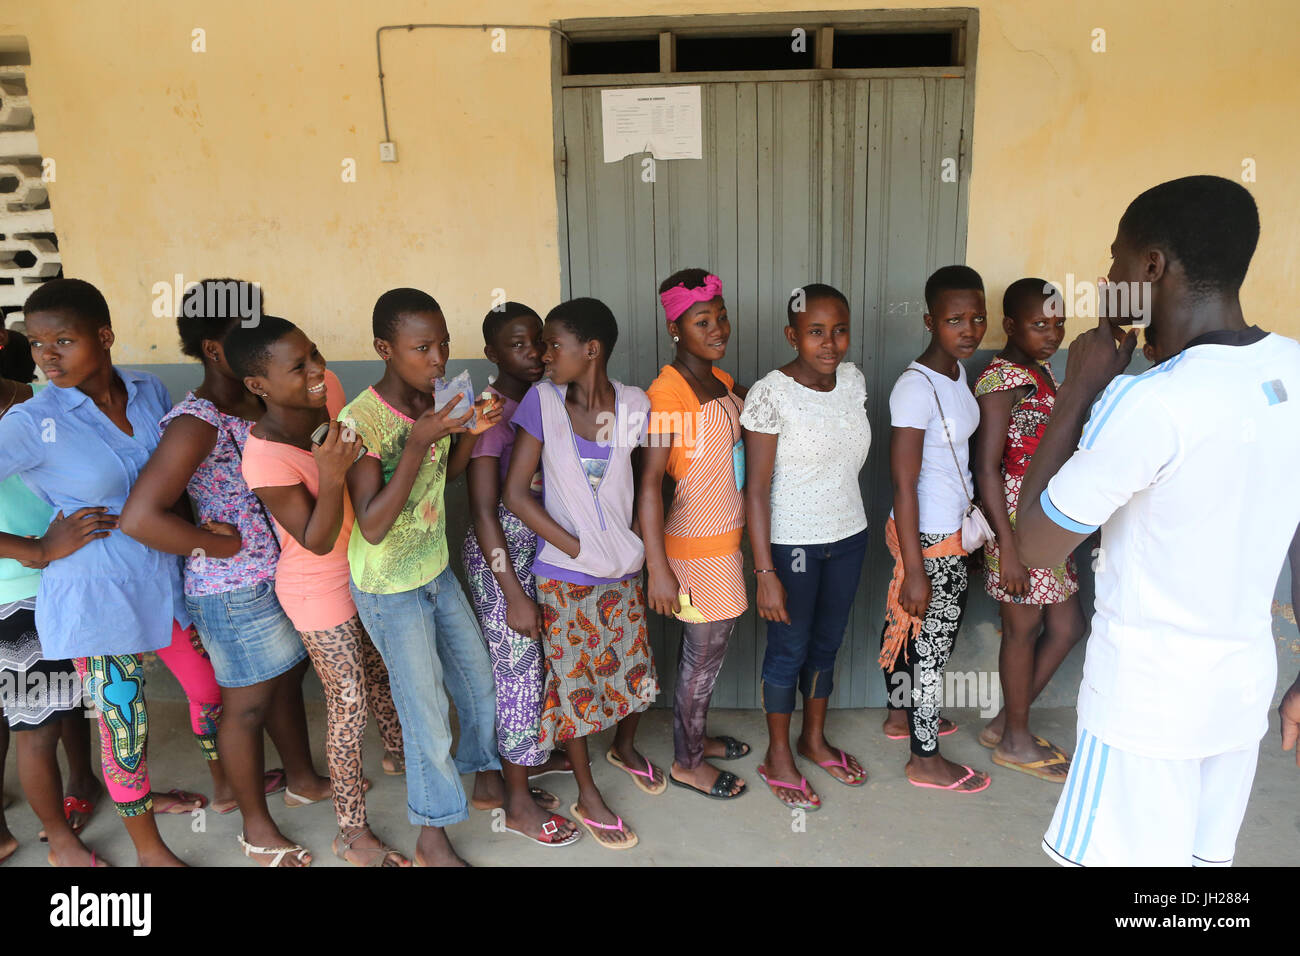 Primary school in Africa. Schoolkids.  Lome. Togo. Stock Photo